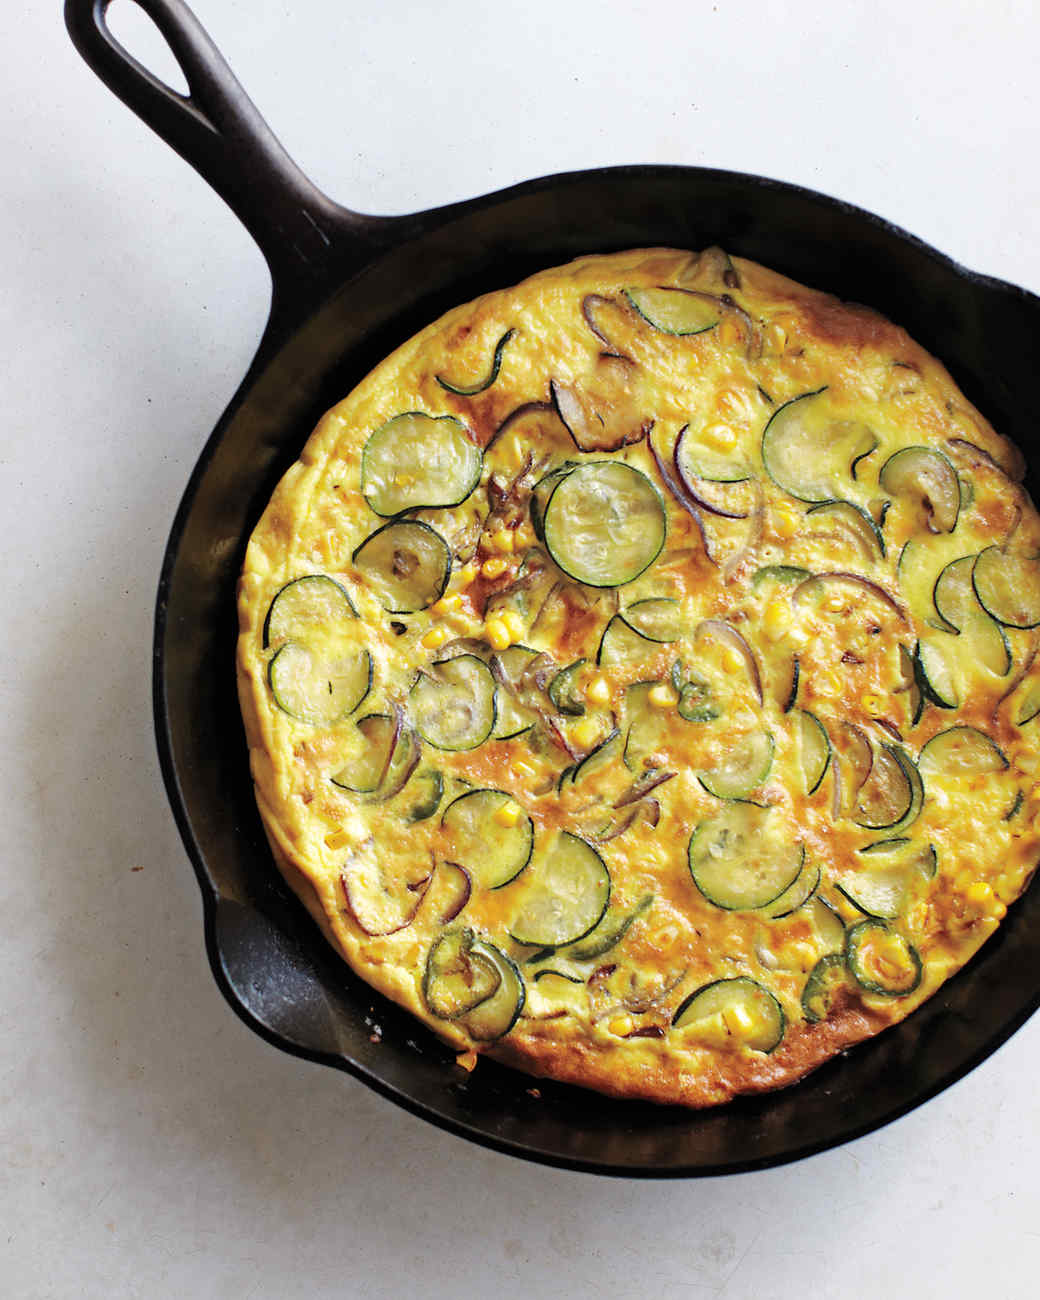 Spicy Zucchini Frittata Recipe & Video | Martha Stewart